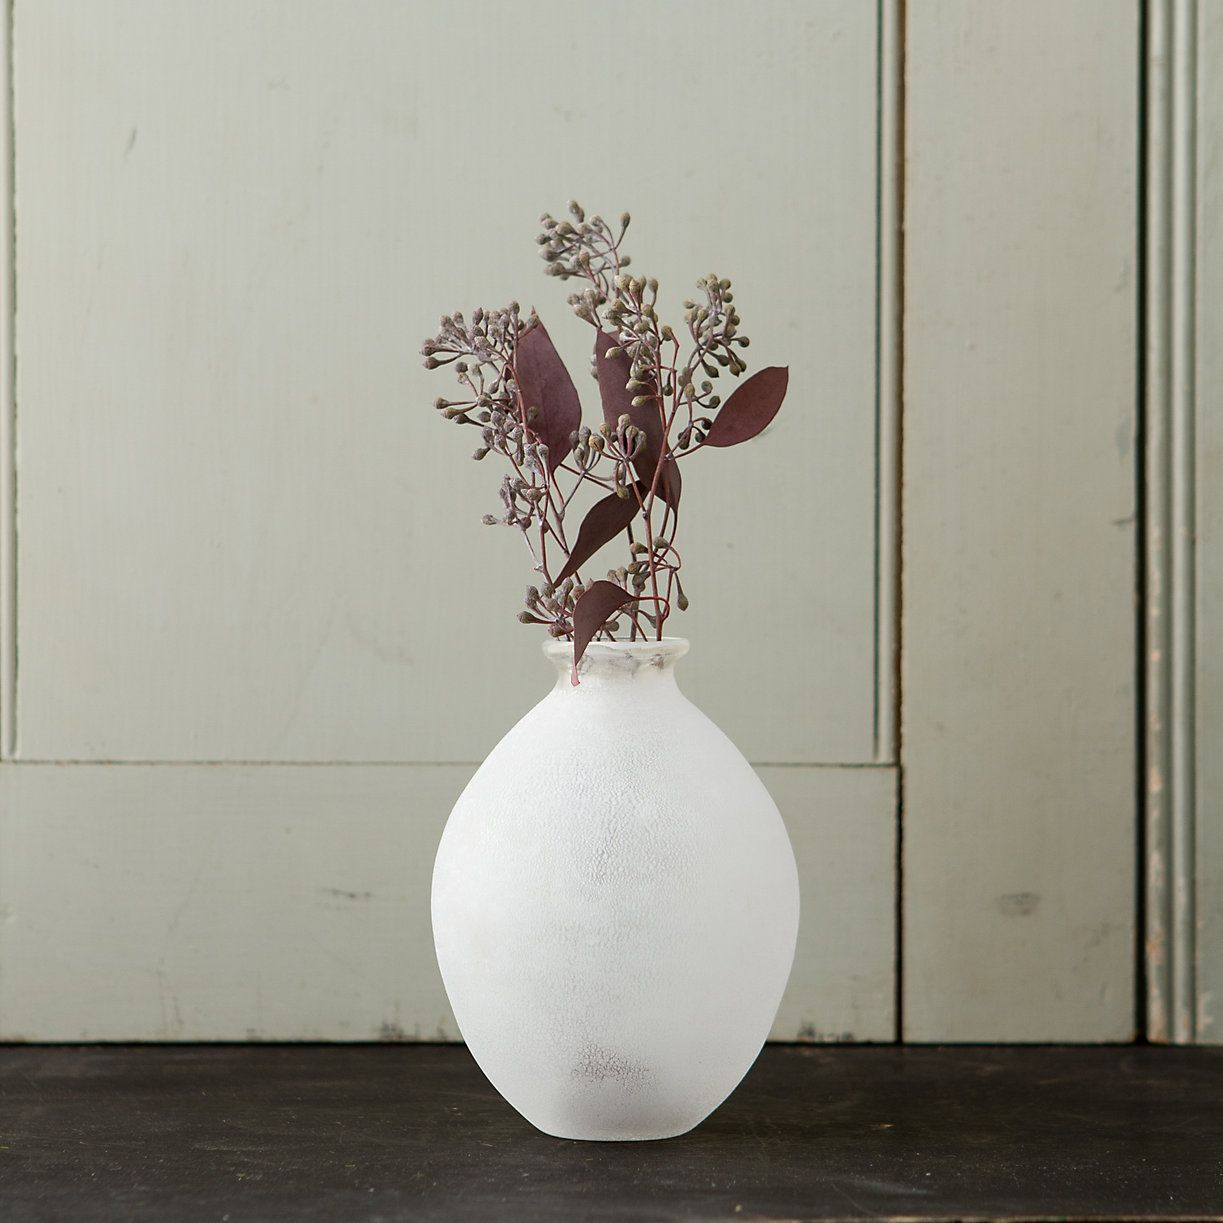 Terrain Frosted Glass Vase, Oblong #shopterrain